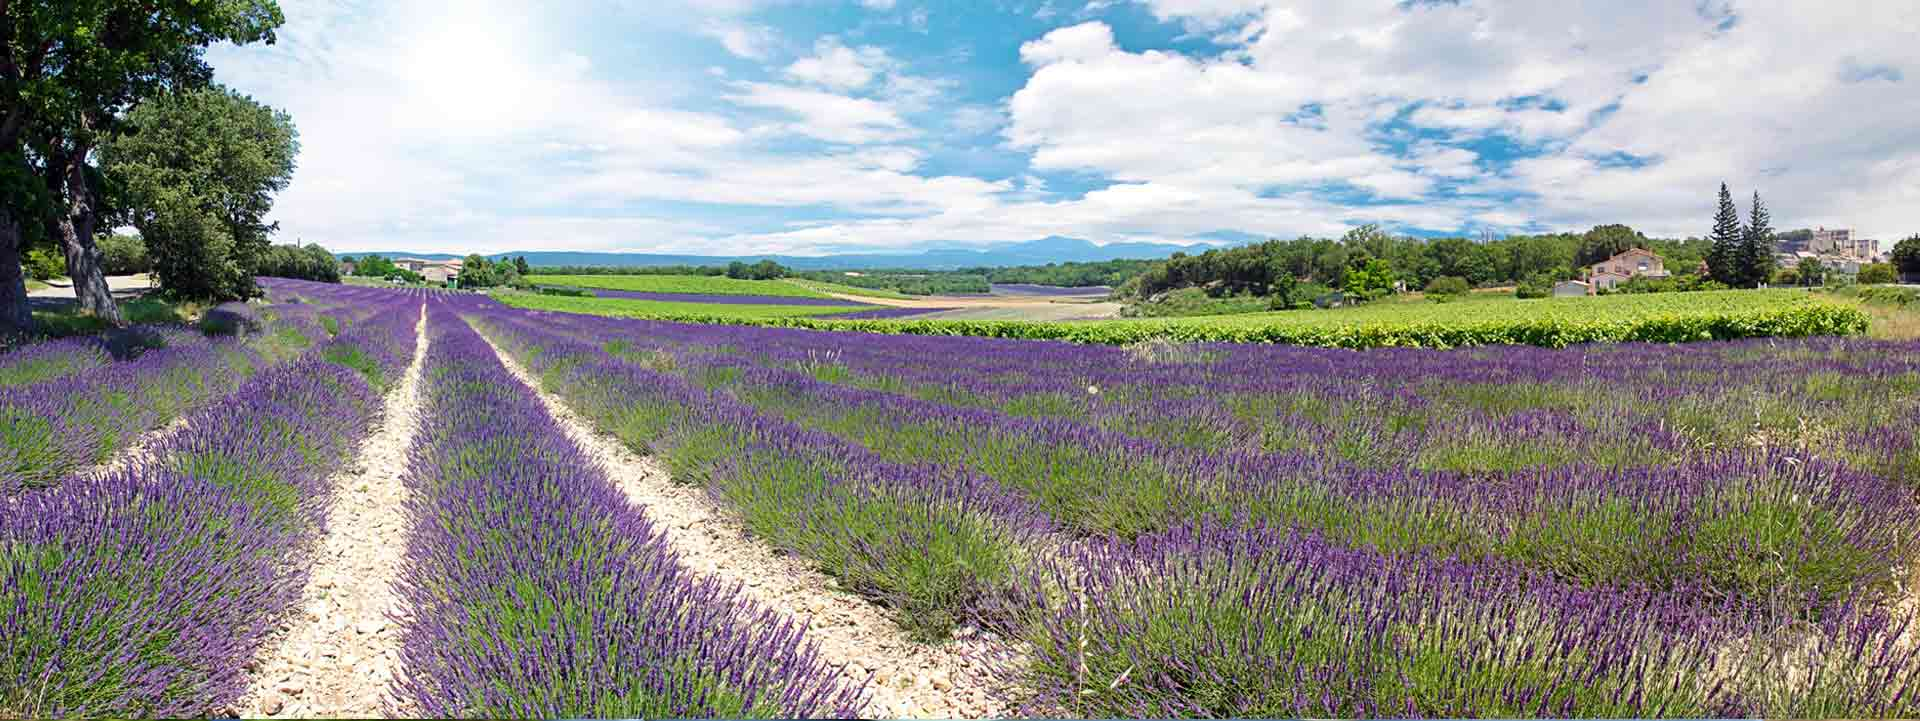 Wine tours in Provence by Mistral Tour, tourist agency in Avignon, who plans and delivers bespoke and personalised wine tours in Provence and the Rhône Valley.